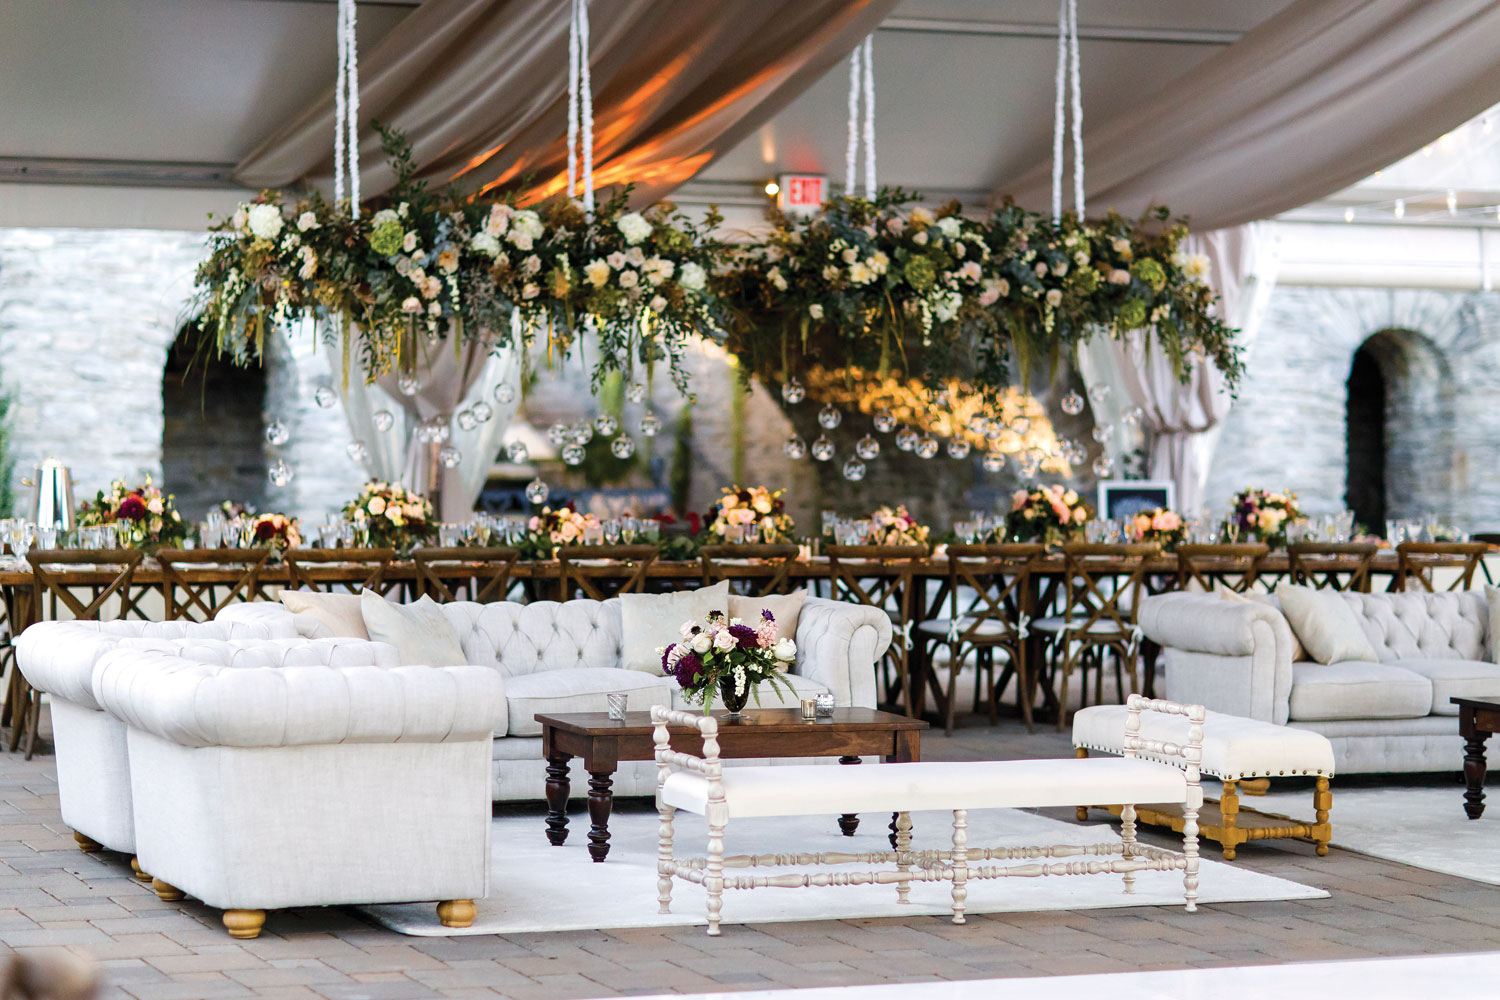 Inside Weddings Summer 2018 issue preview lounge area at wedding reception